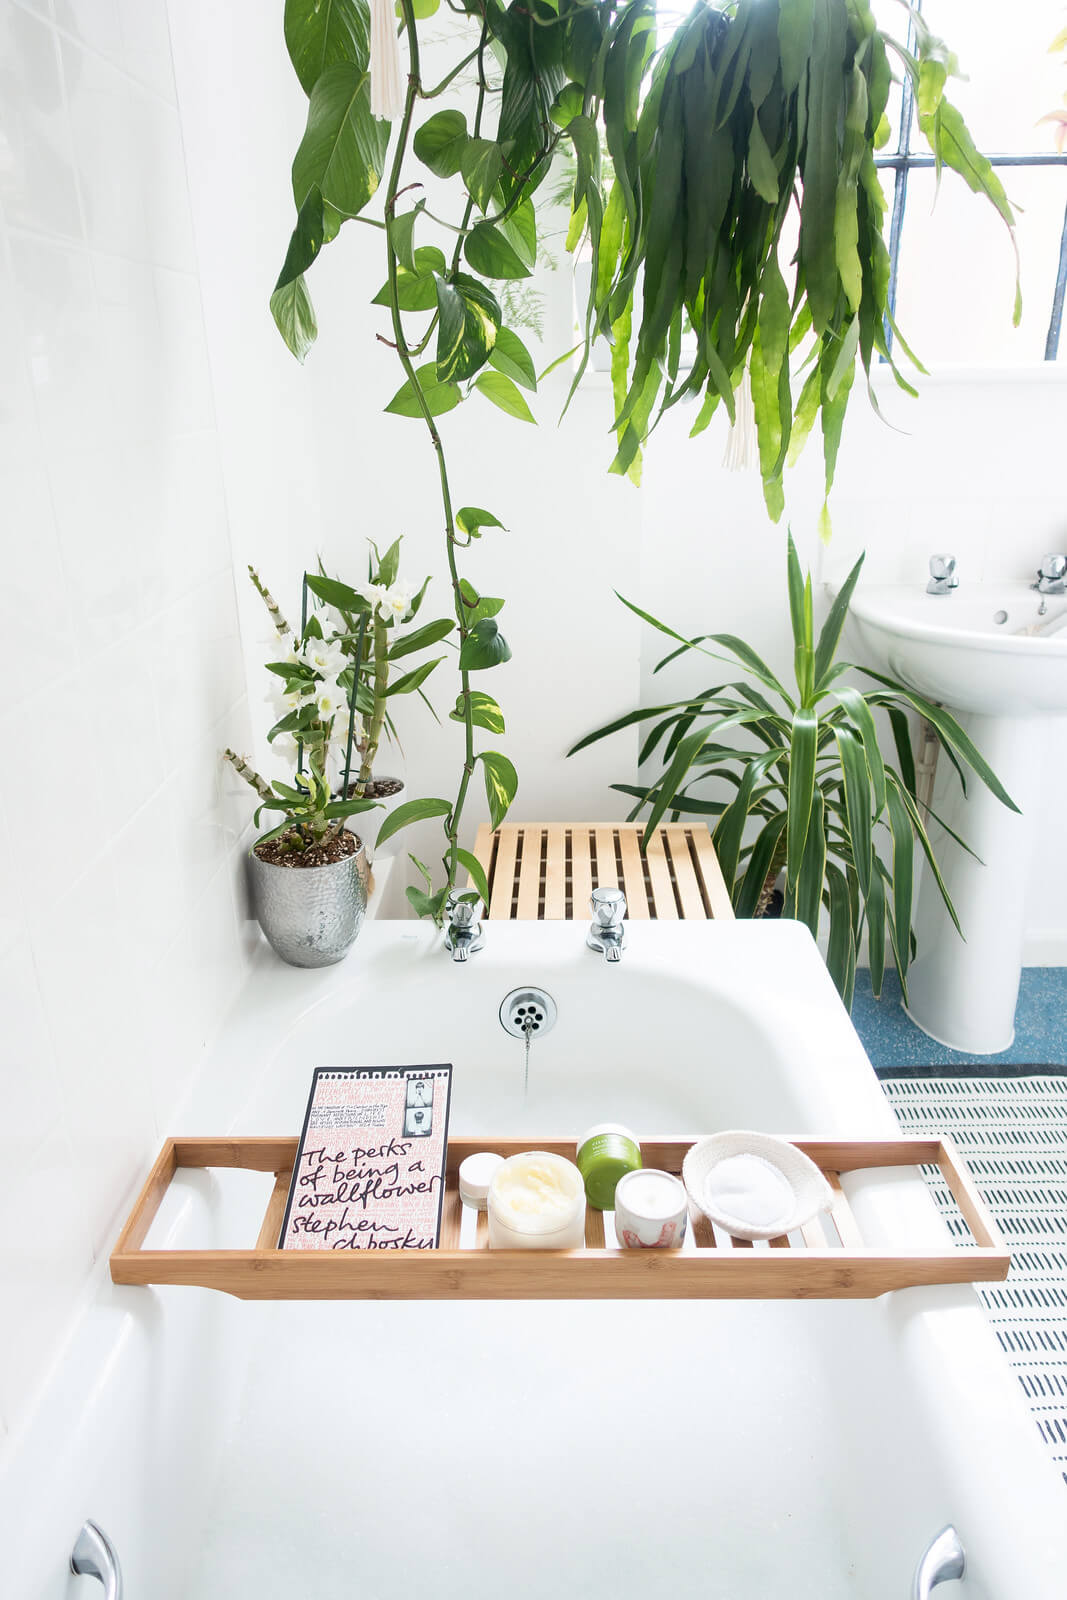 Slip into Serenity with Natural Light and Perfect Plants